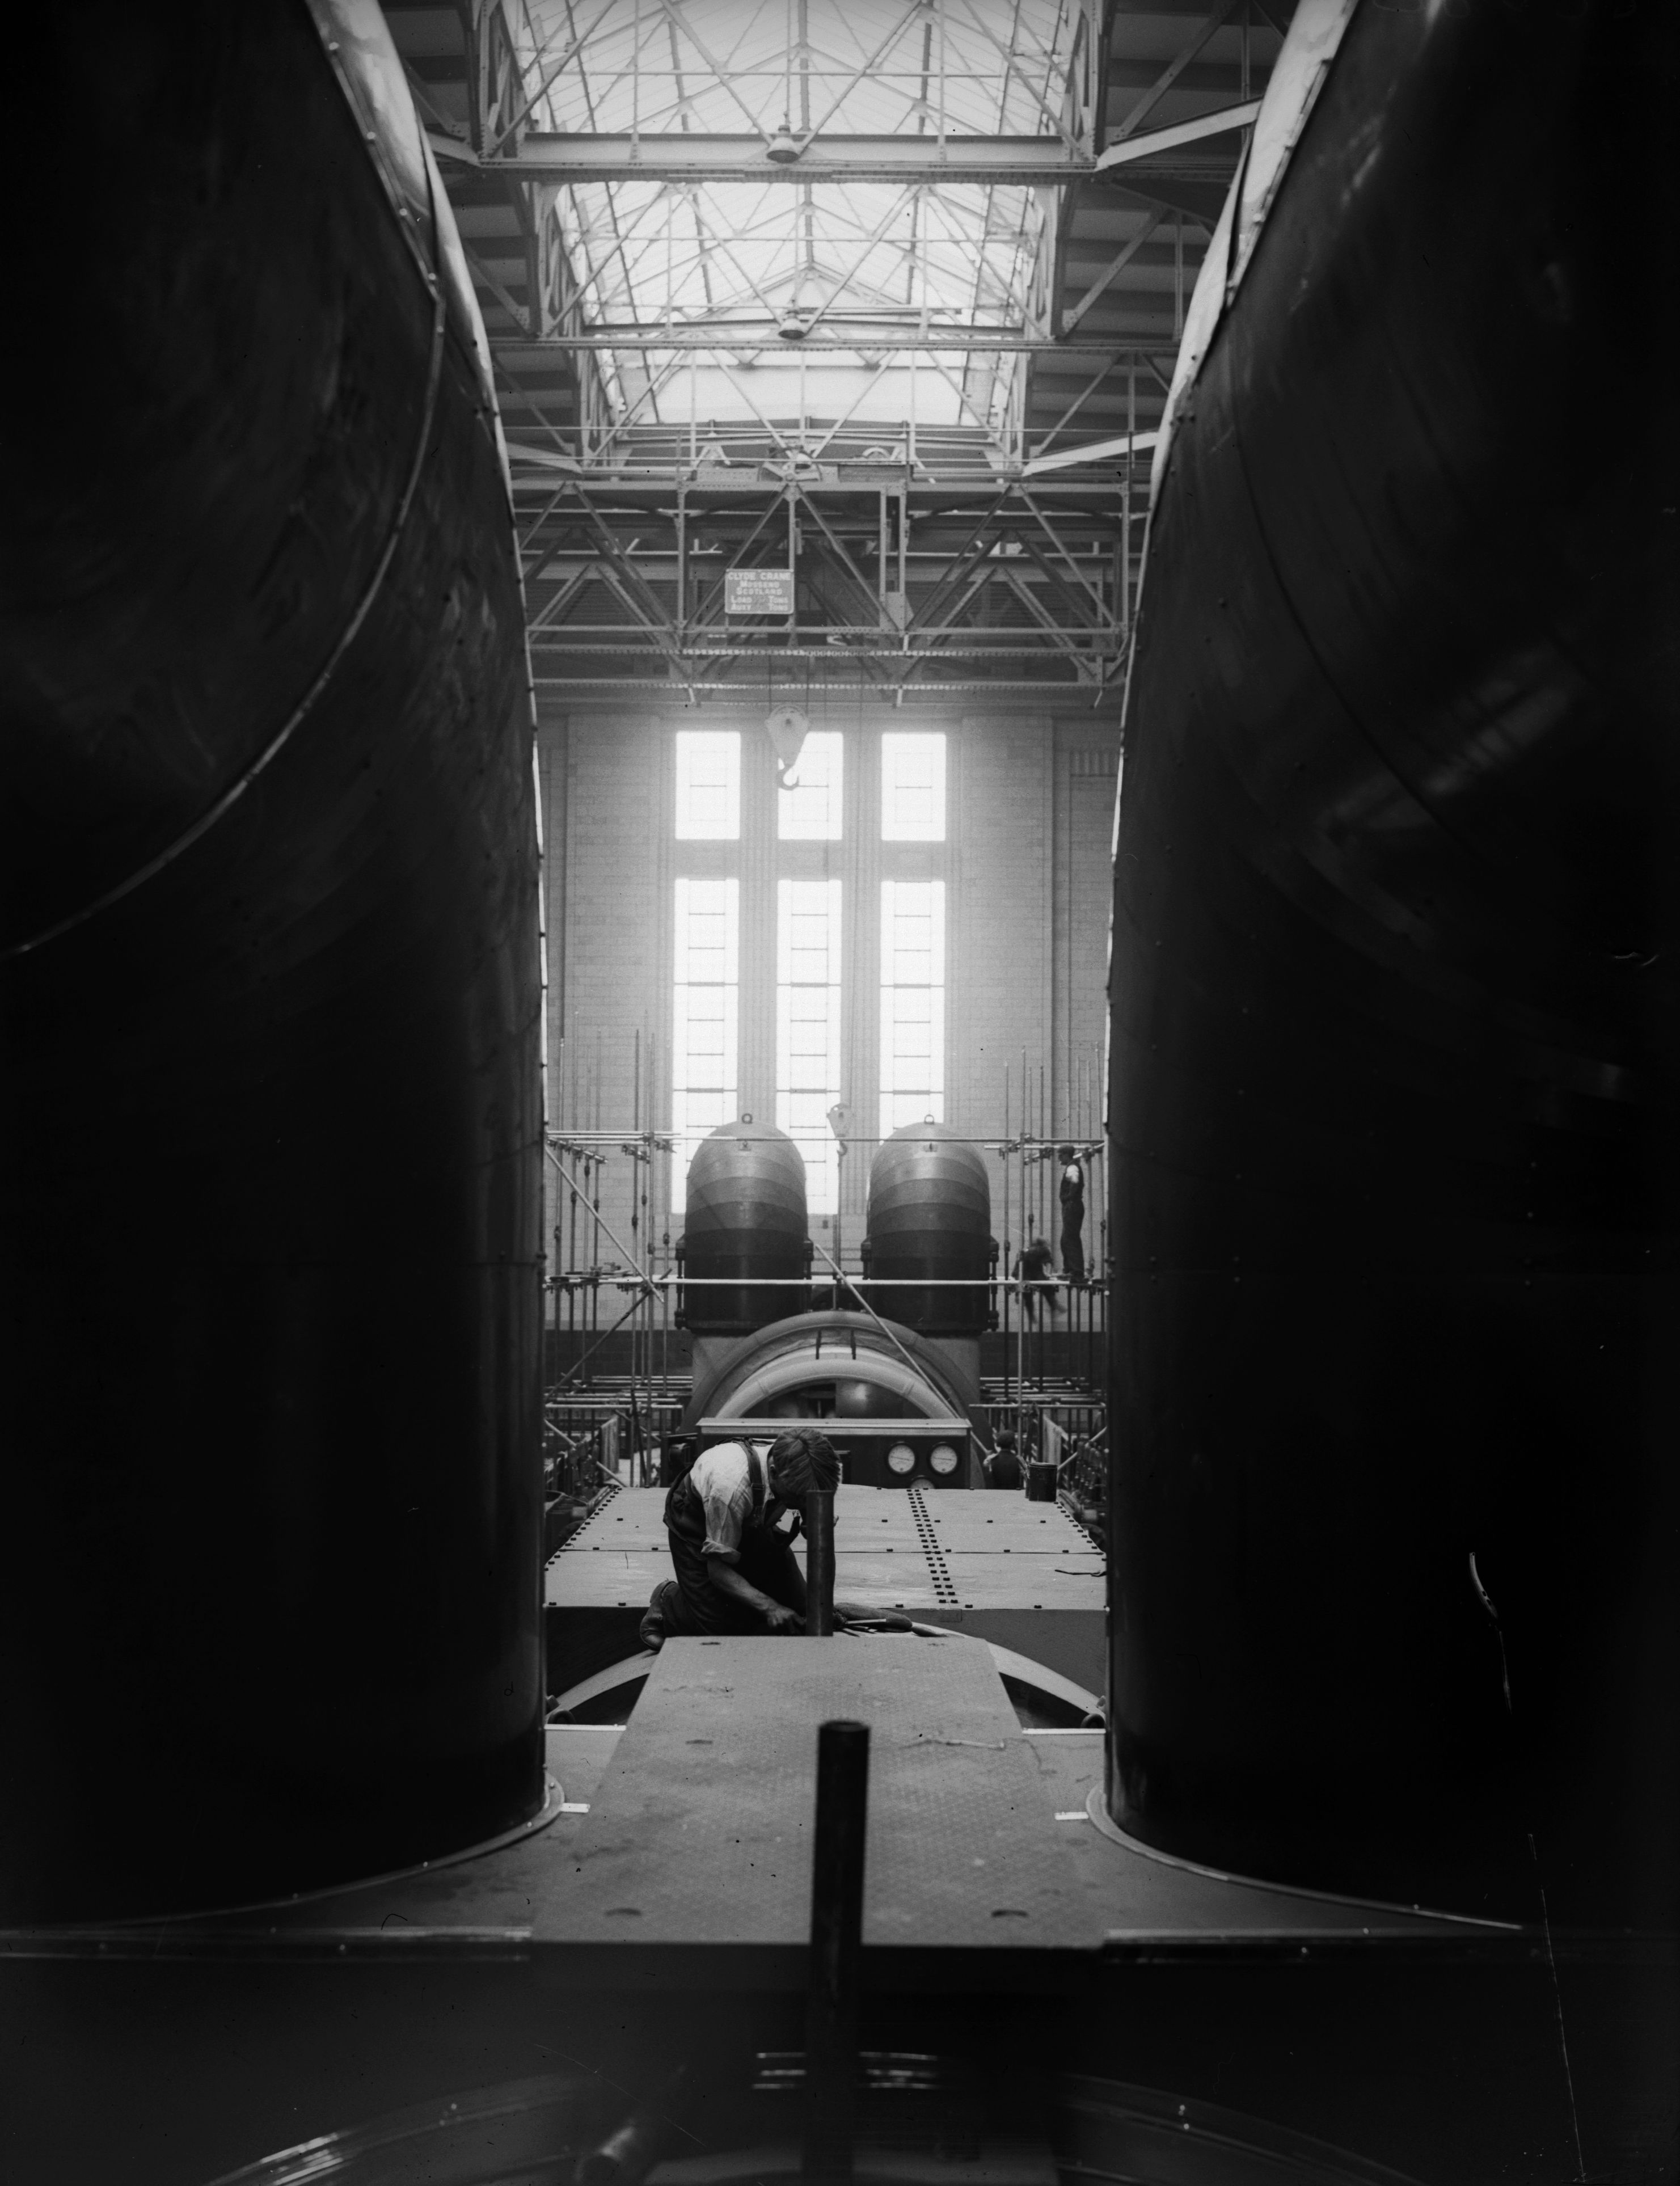 10th July 1933: A worker inside London's Battersea Power Station. (Photo by Fox Photos/Getty Images)